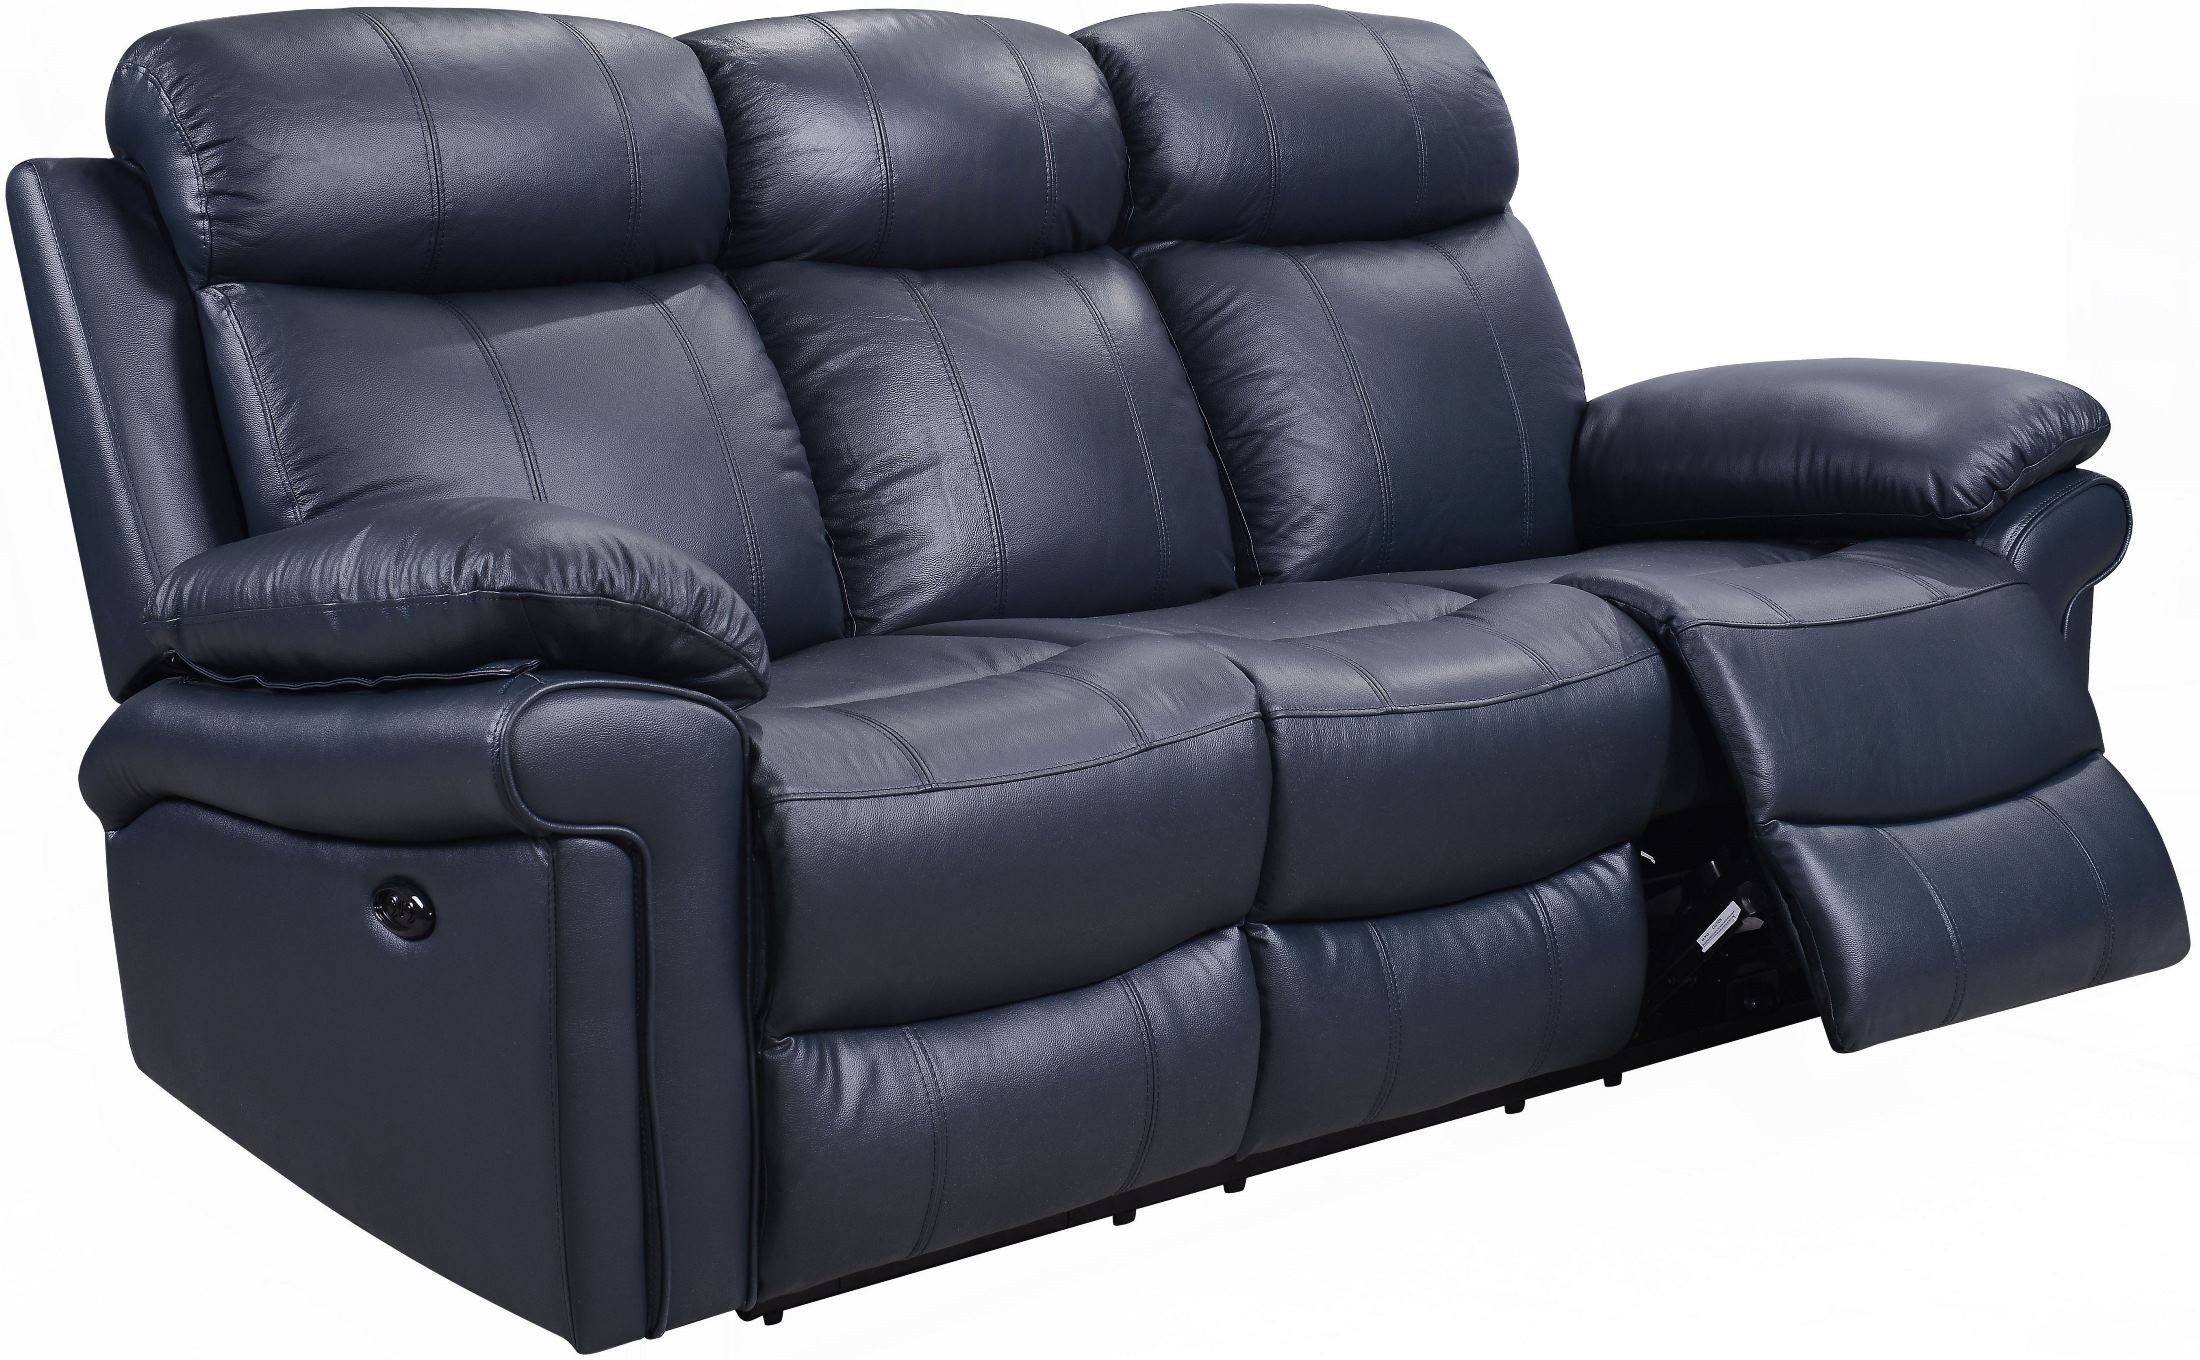 shae joplin blue leather power reclining sofa 1555 e2117 On blue leather reclining sofa